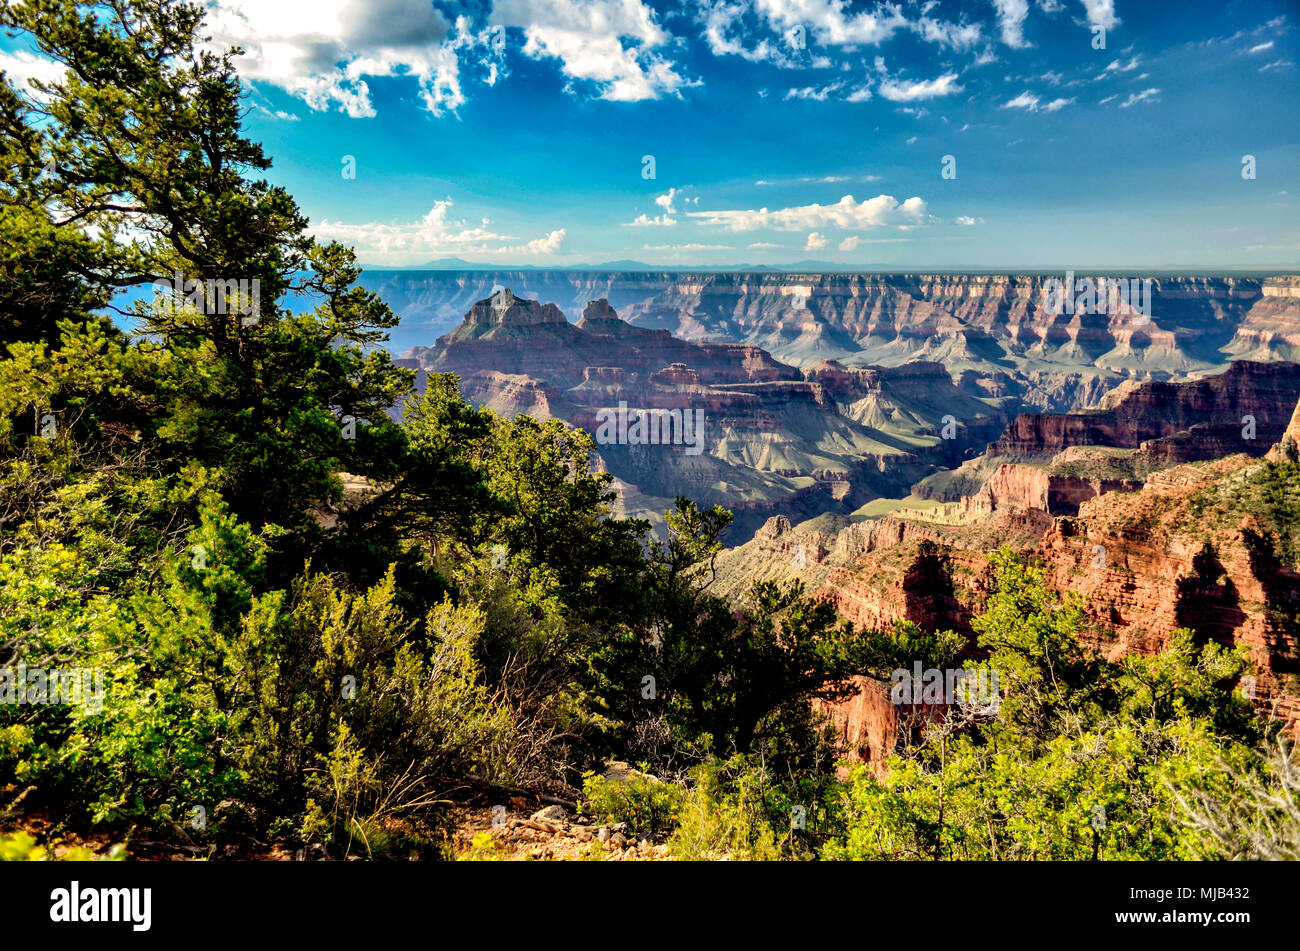 Looking from the North Rim of the Grand Canyon to the South side, green trees, deep canyons under a blue sky with white fluffy clouds. - Stock Image